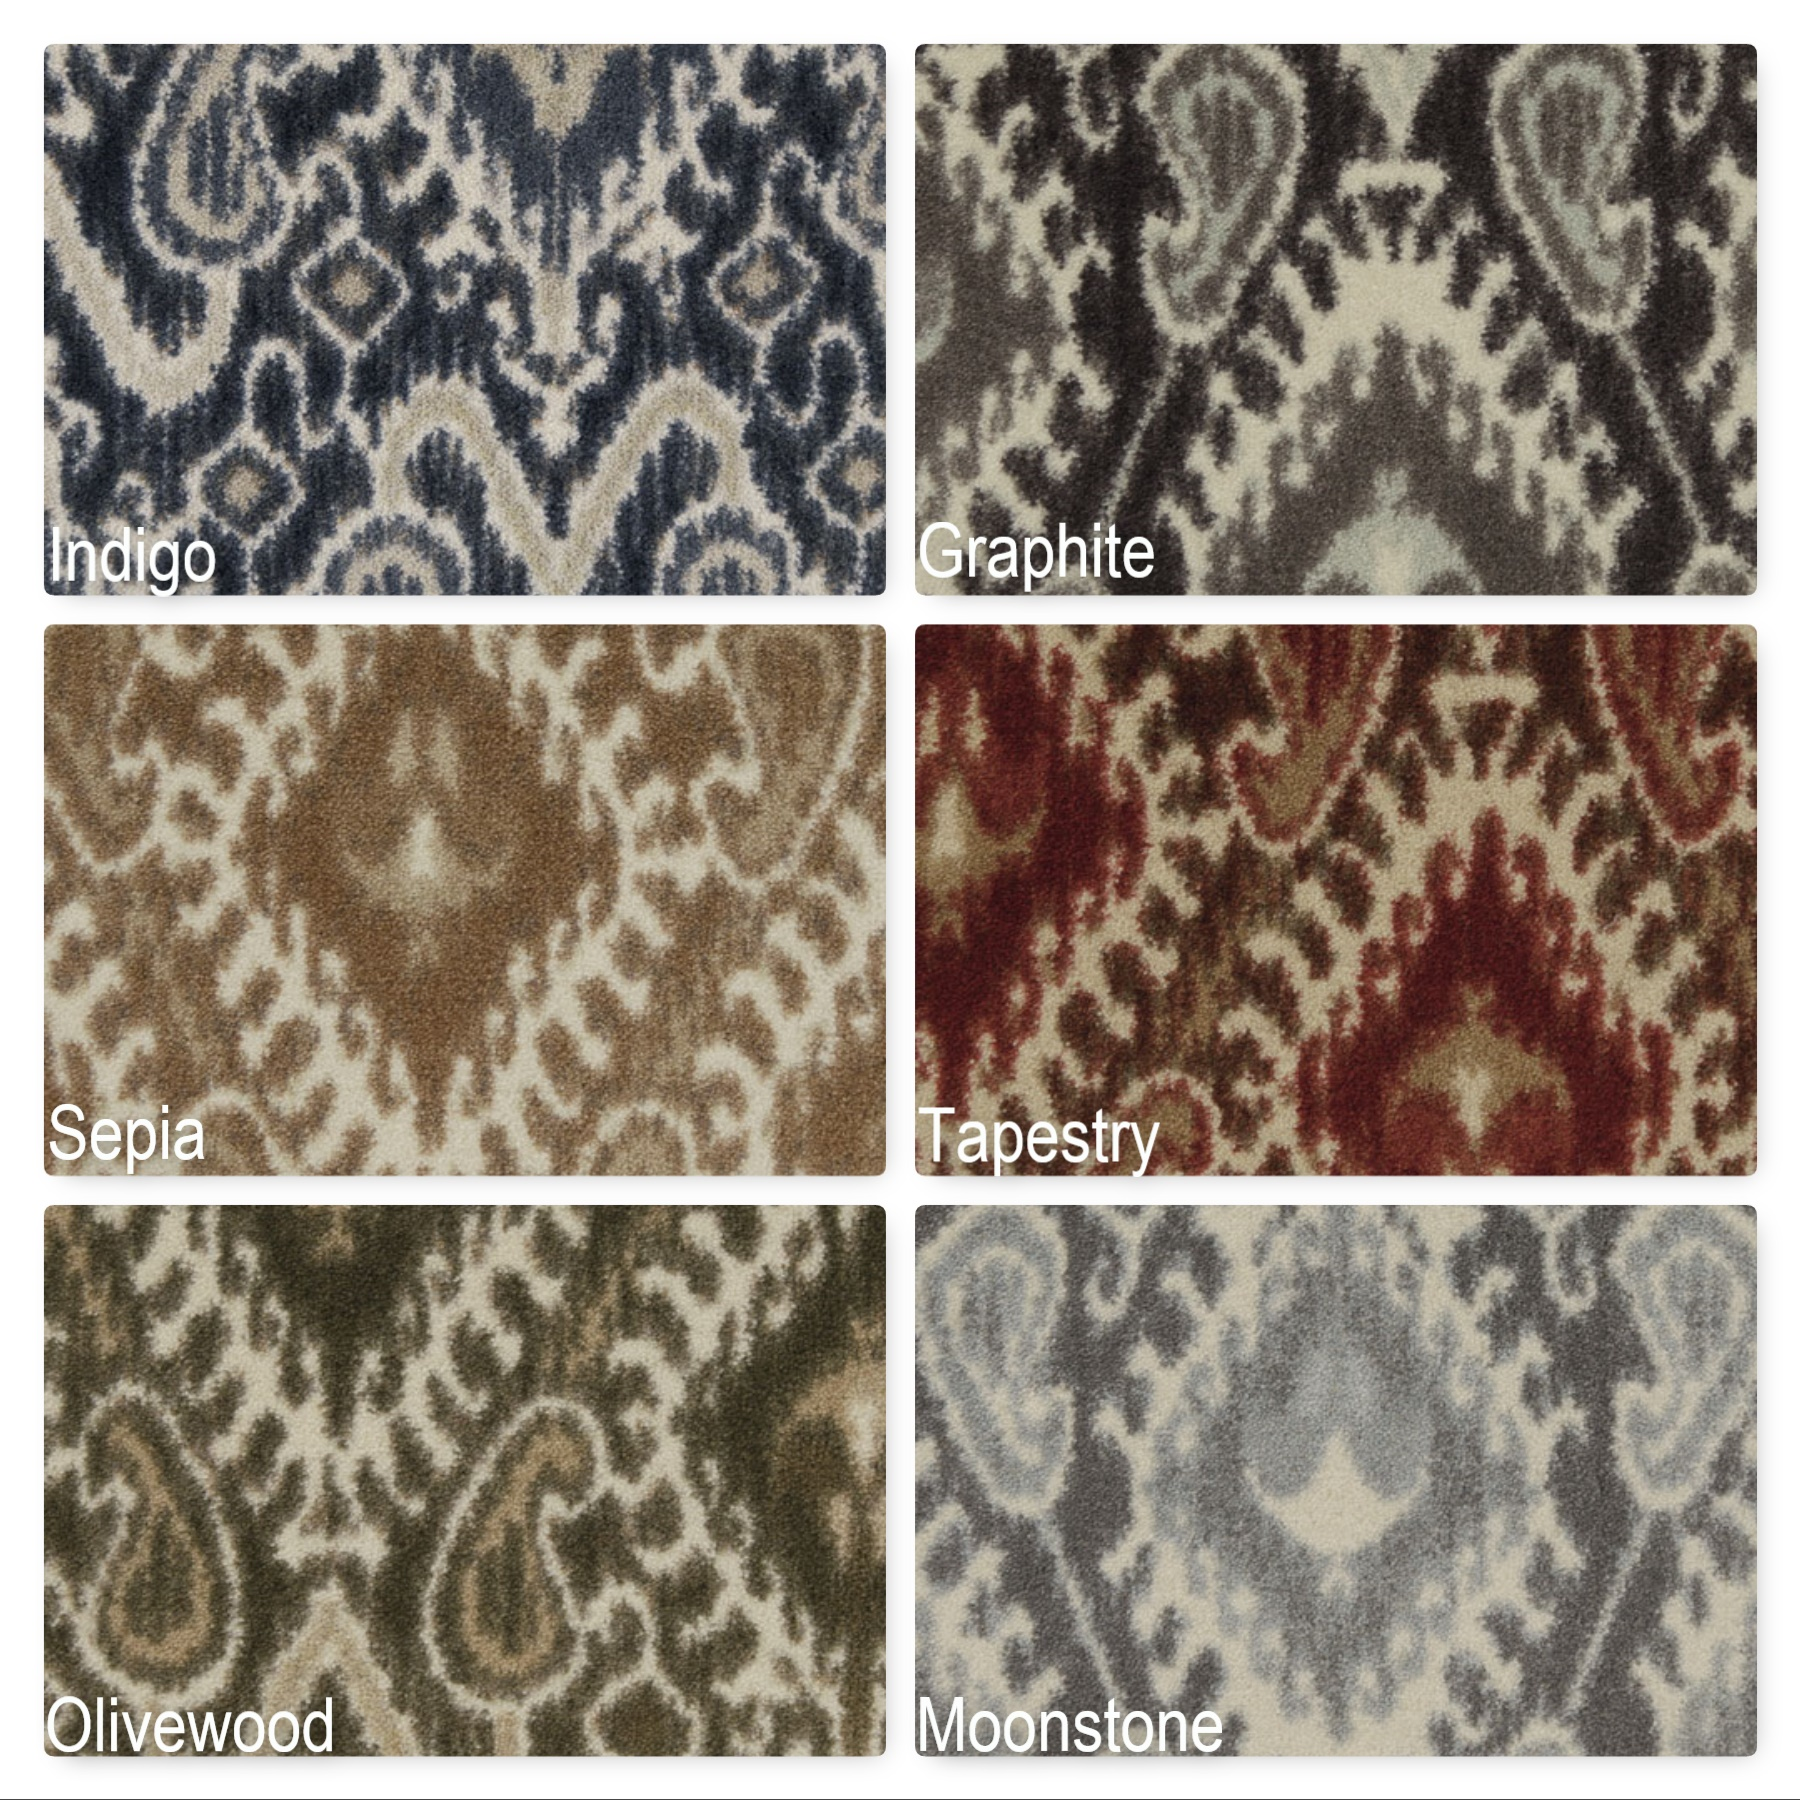 milliken artisan indoor ikat pattern area rug  ikat carpet  ikat  - milliken artisan indoor ikat pattern area rug collection  ″ thick  ozcut pile area rug multiple colors